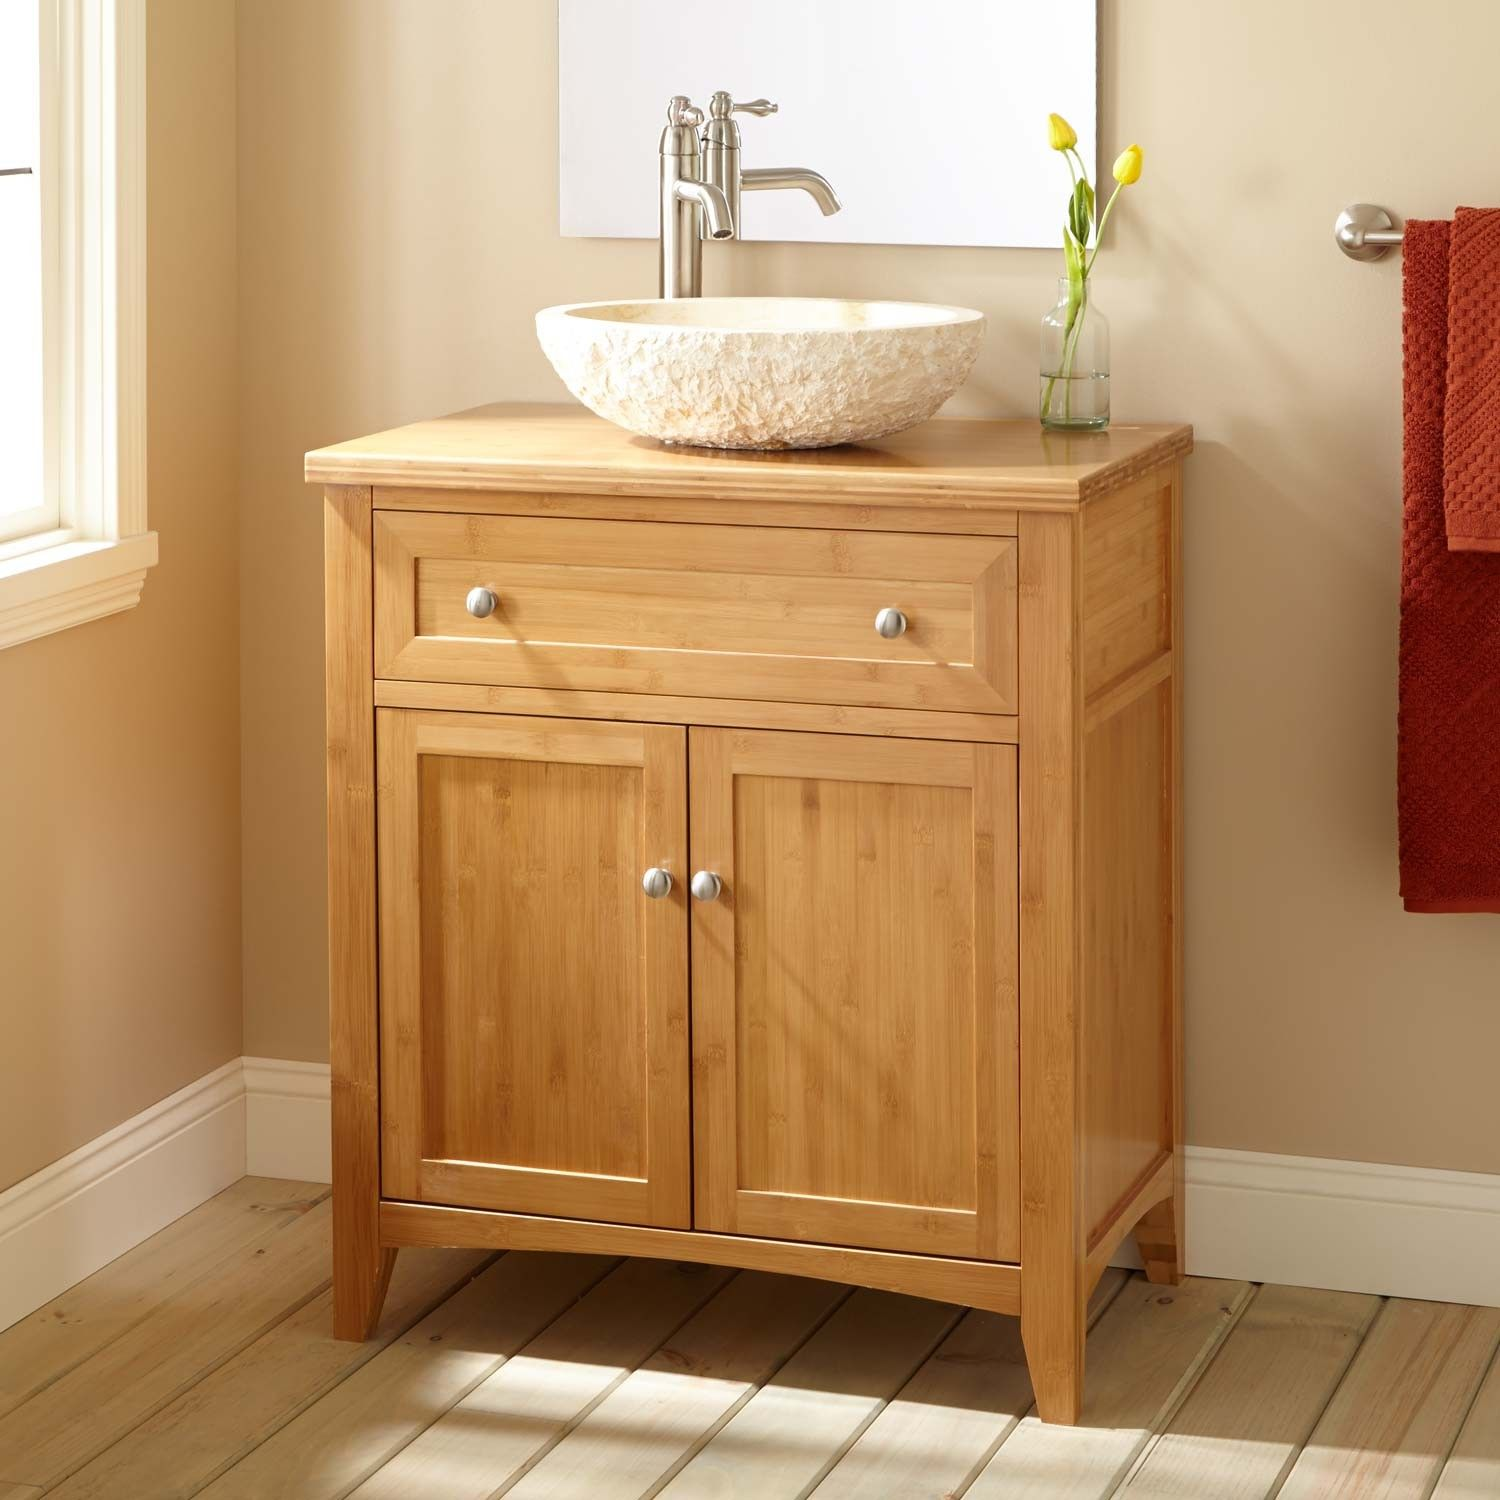 "30"" Narrow Depth Halifax Bamboo Vessel Sink Vanity  Vessel Sink Fair Narrow Depth Bathroom Vanity 2018"